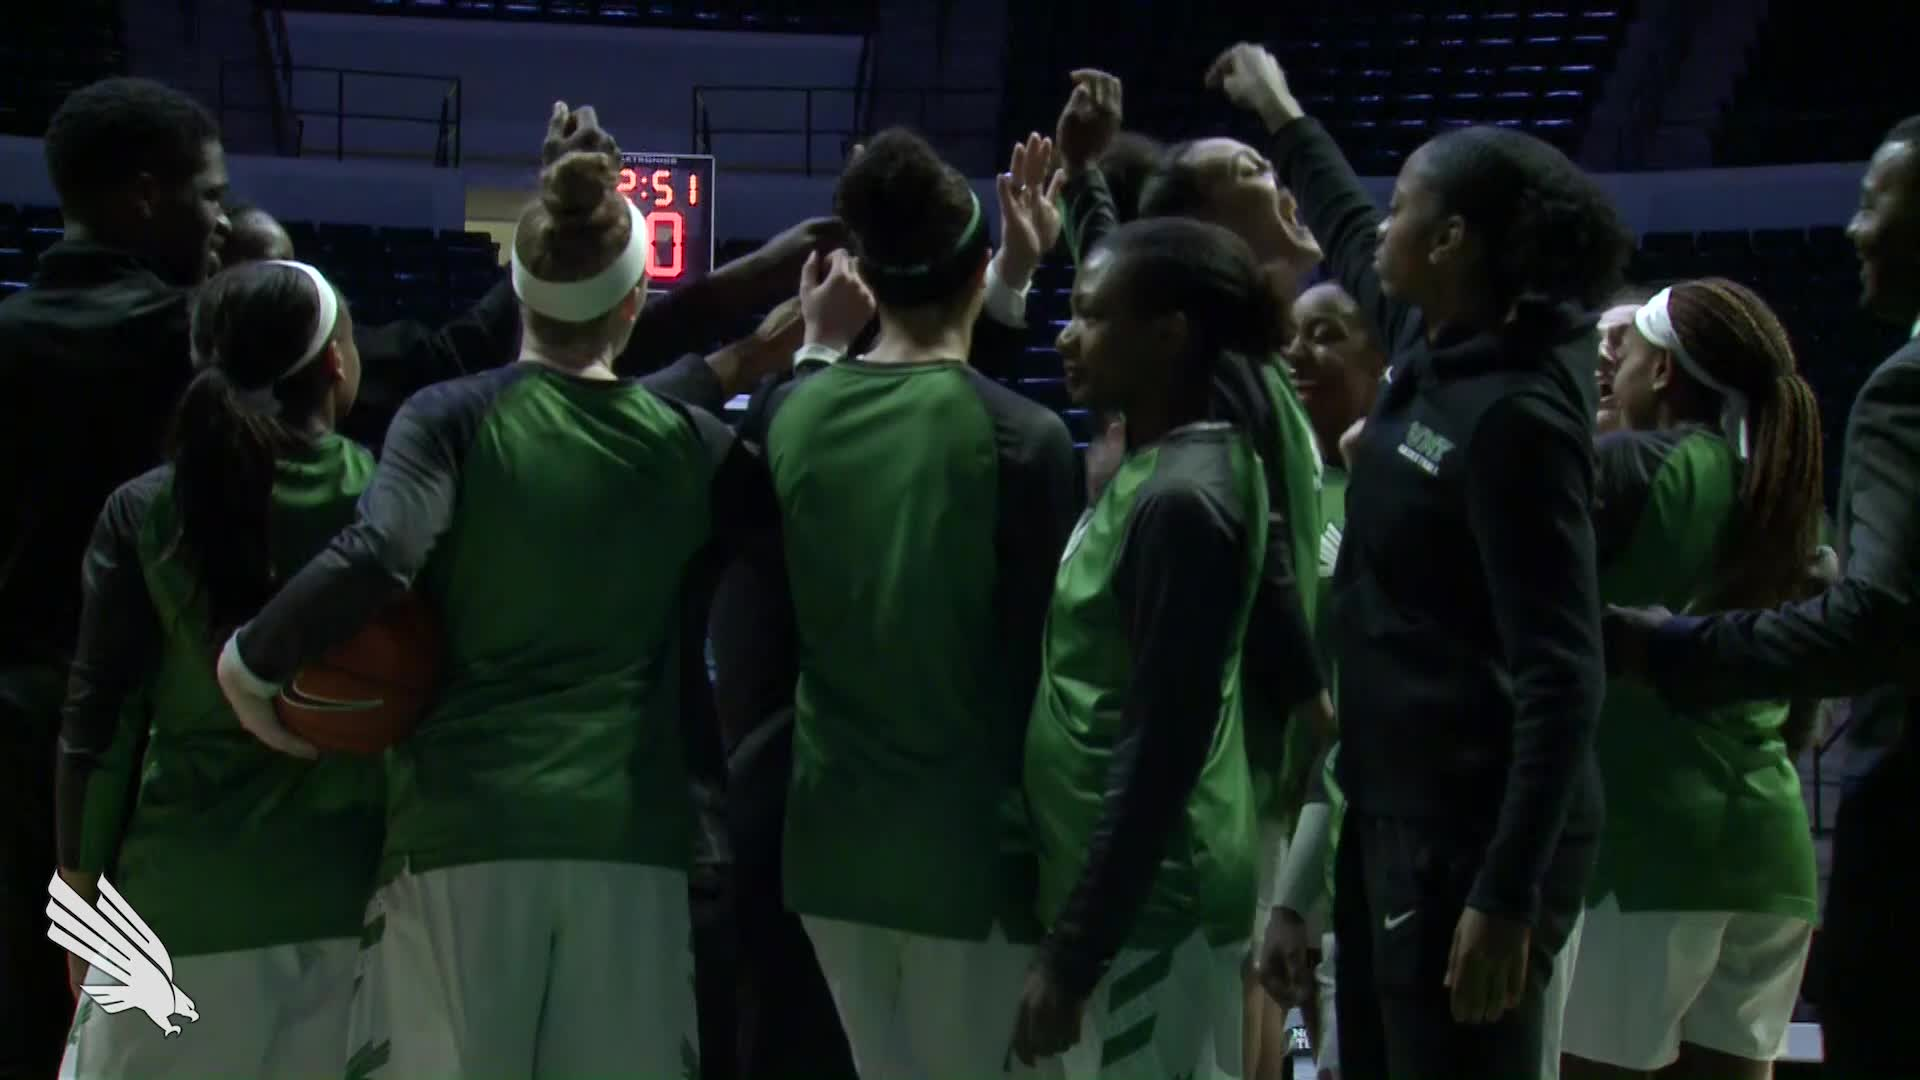 North Texas WBB: Highlights vs UTEP 01/10/19